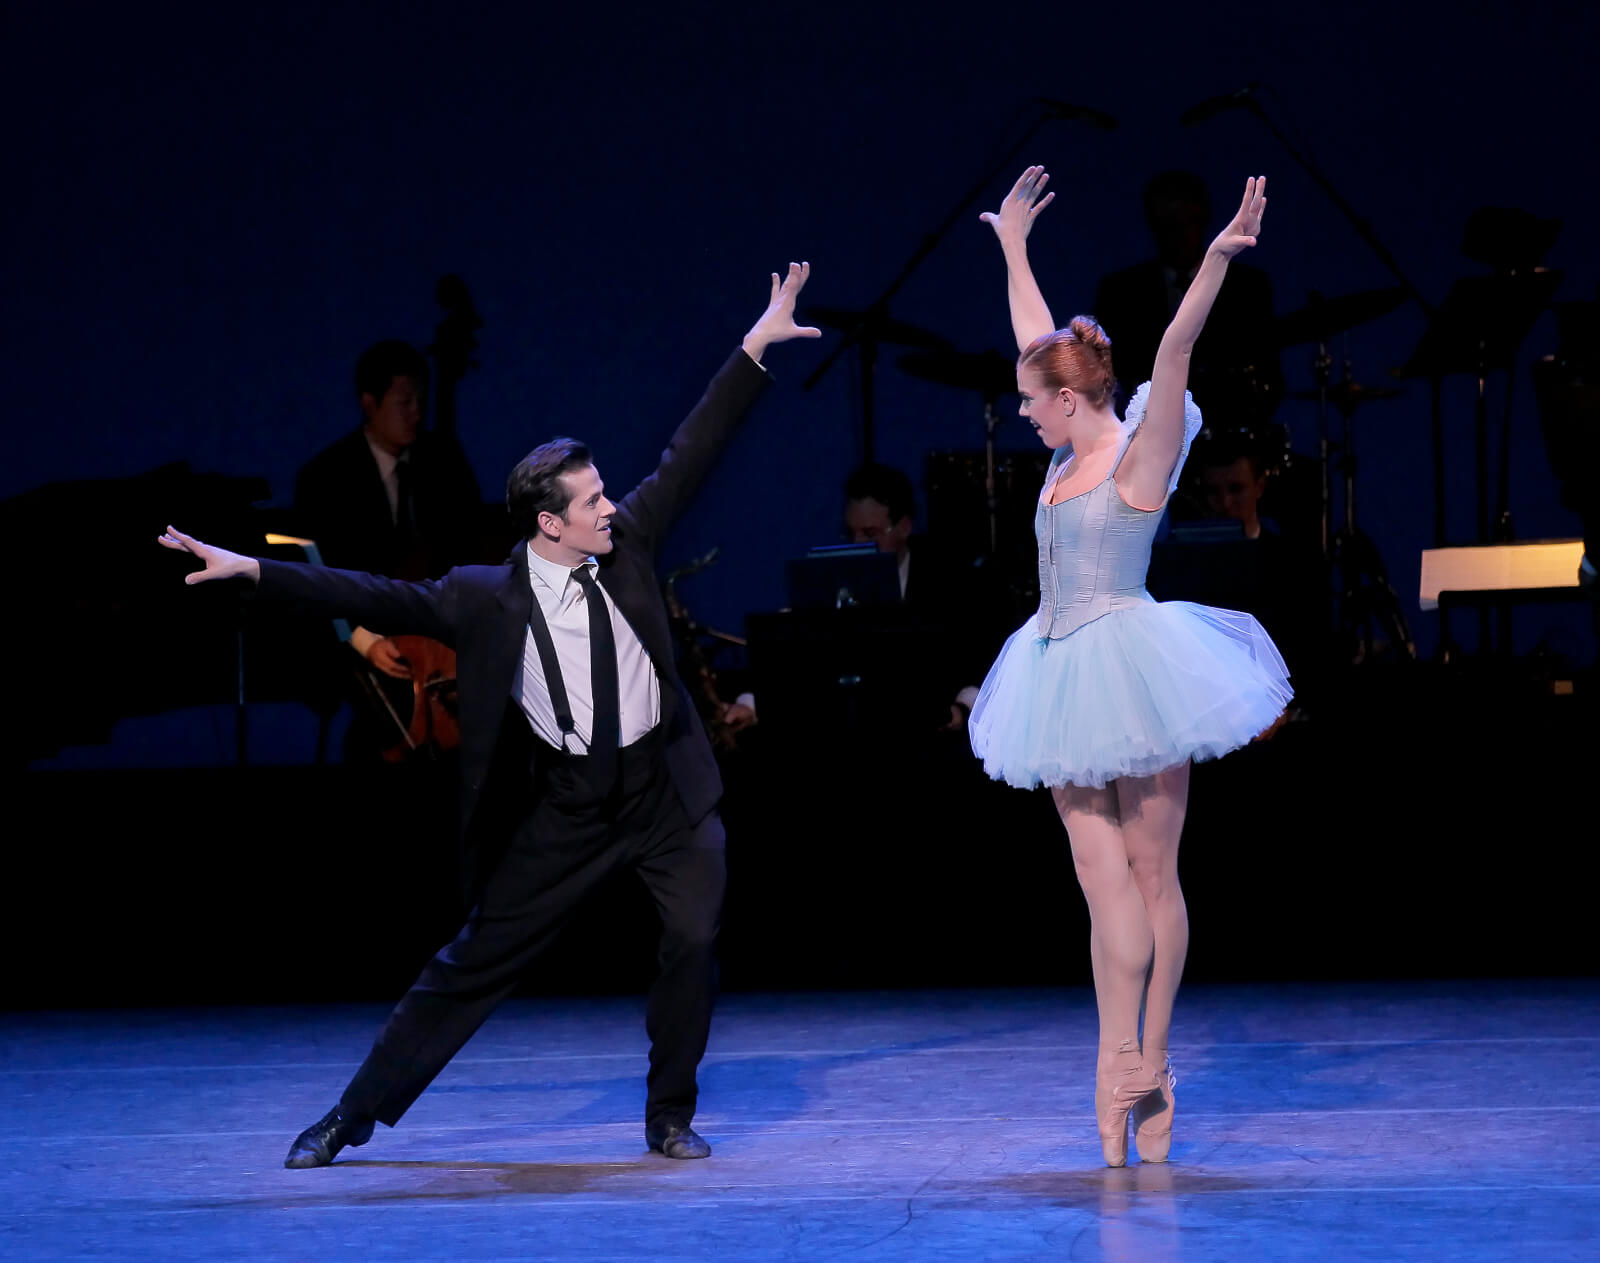 """A pas de deux to """"Lotus Blossom"""" between The Musician (Robert Fairchild) and Blossom (Savannah Lowery). She is wearing a beautiful dega-like tutu."""